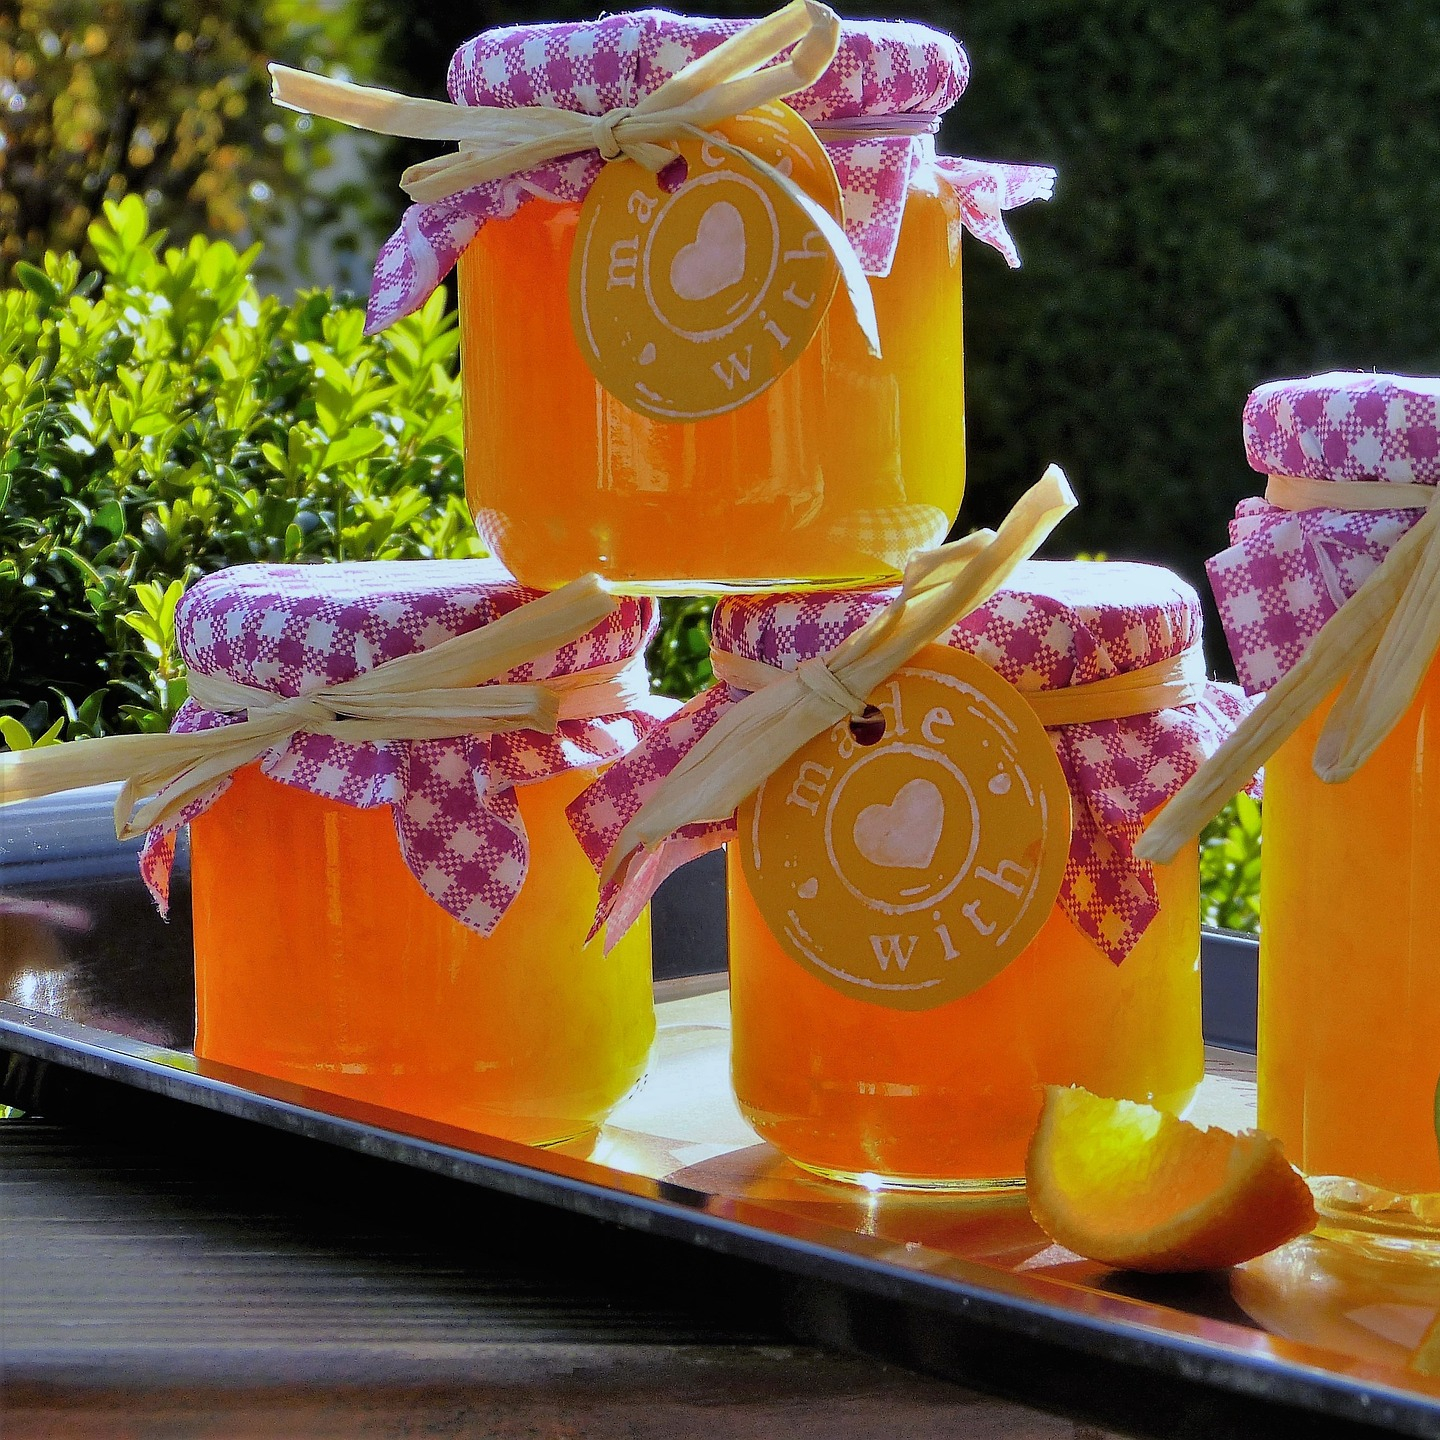 jars of orange marmalade with handcrafted lids and tags on tray with citrus slices